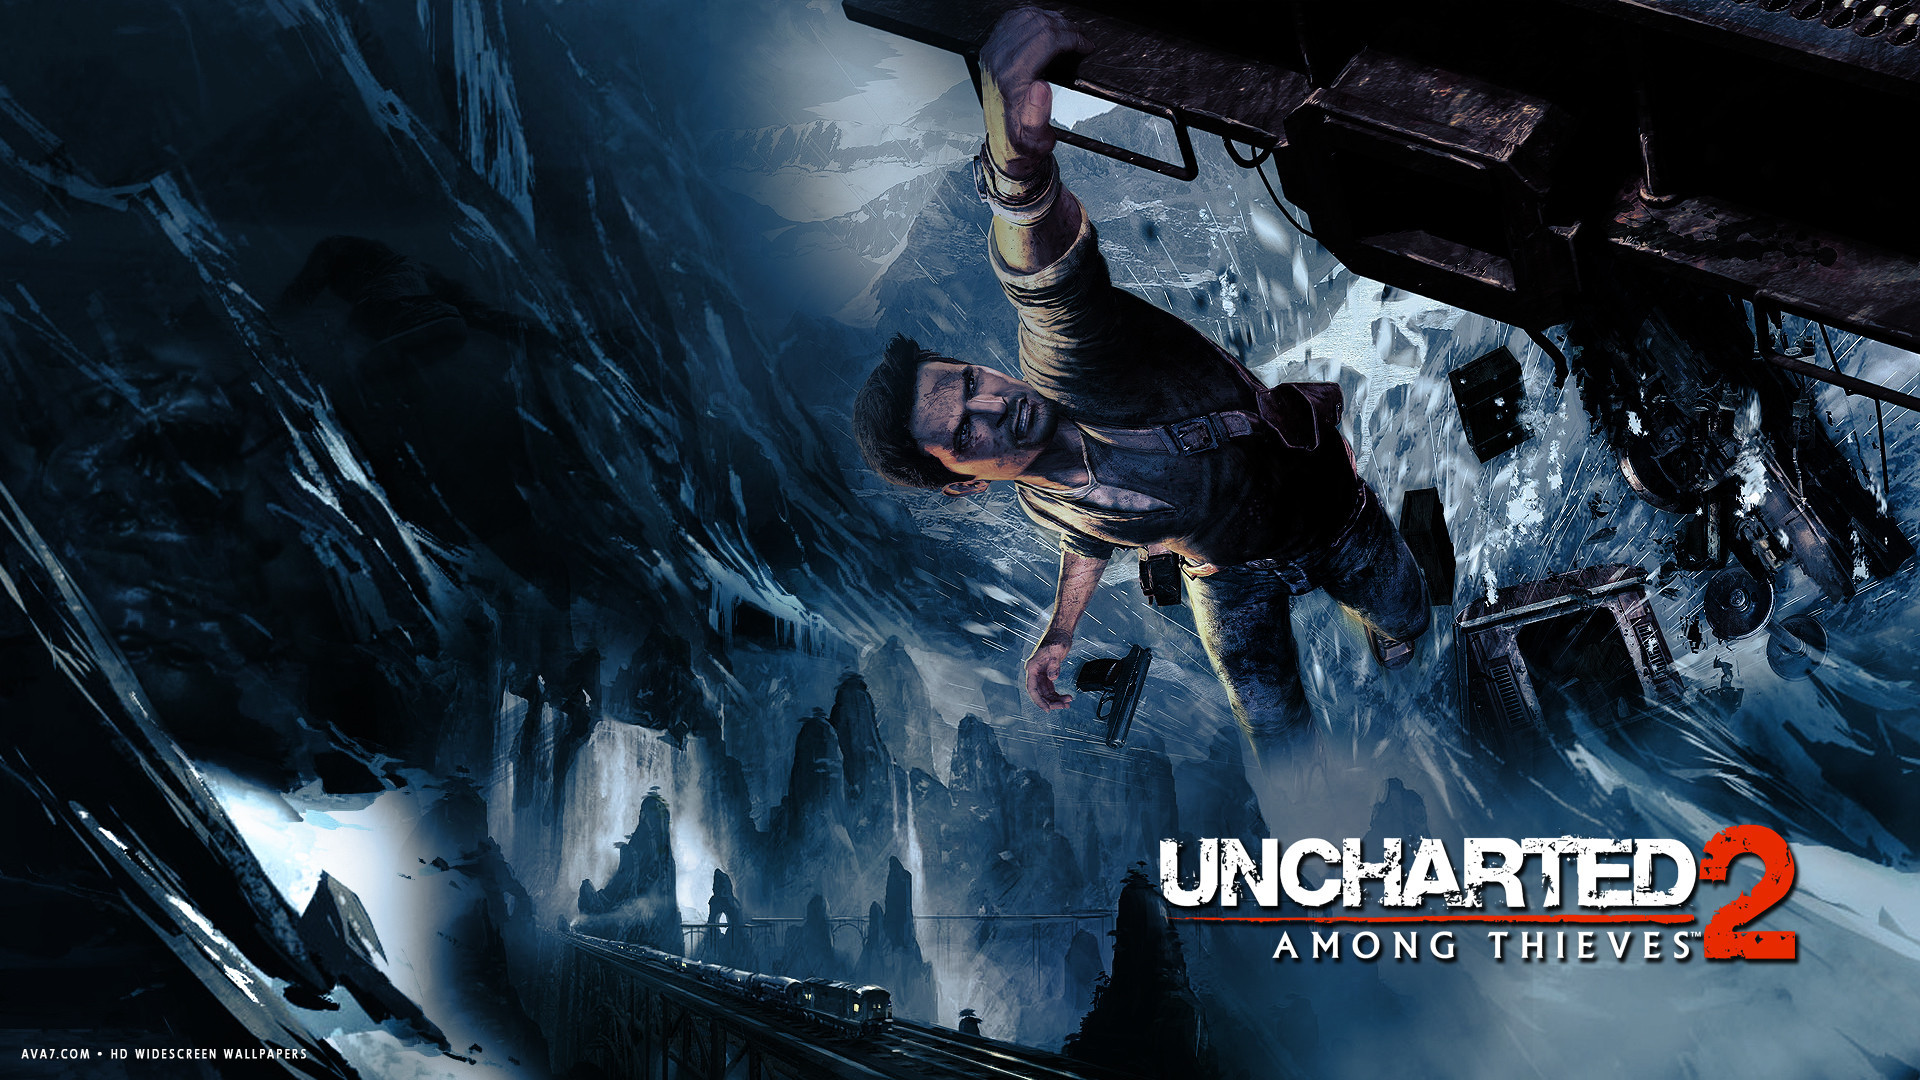 uncharted 2 among thieves game hd widescreen wallpaper